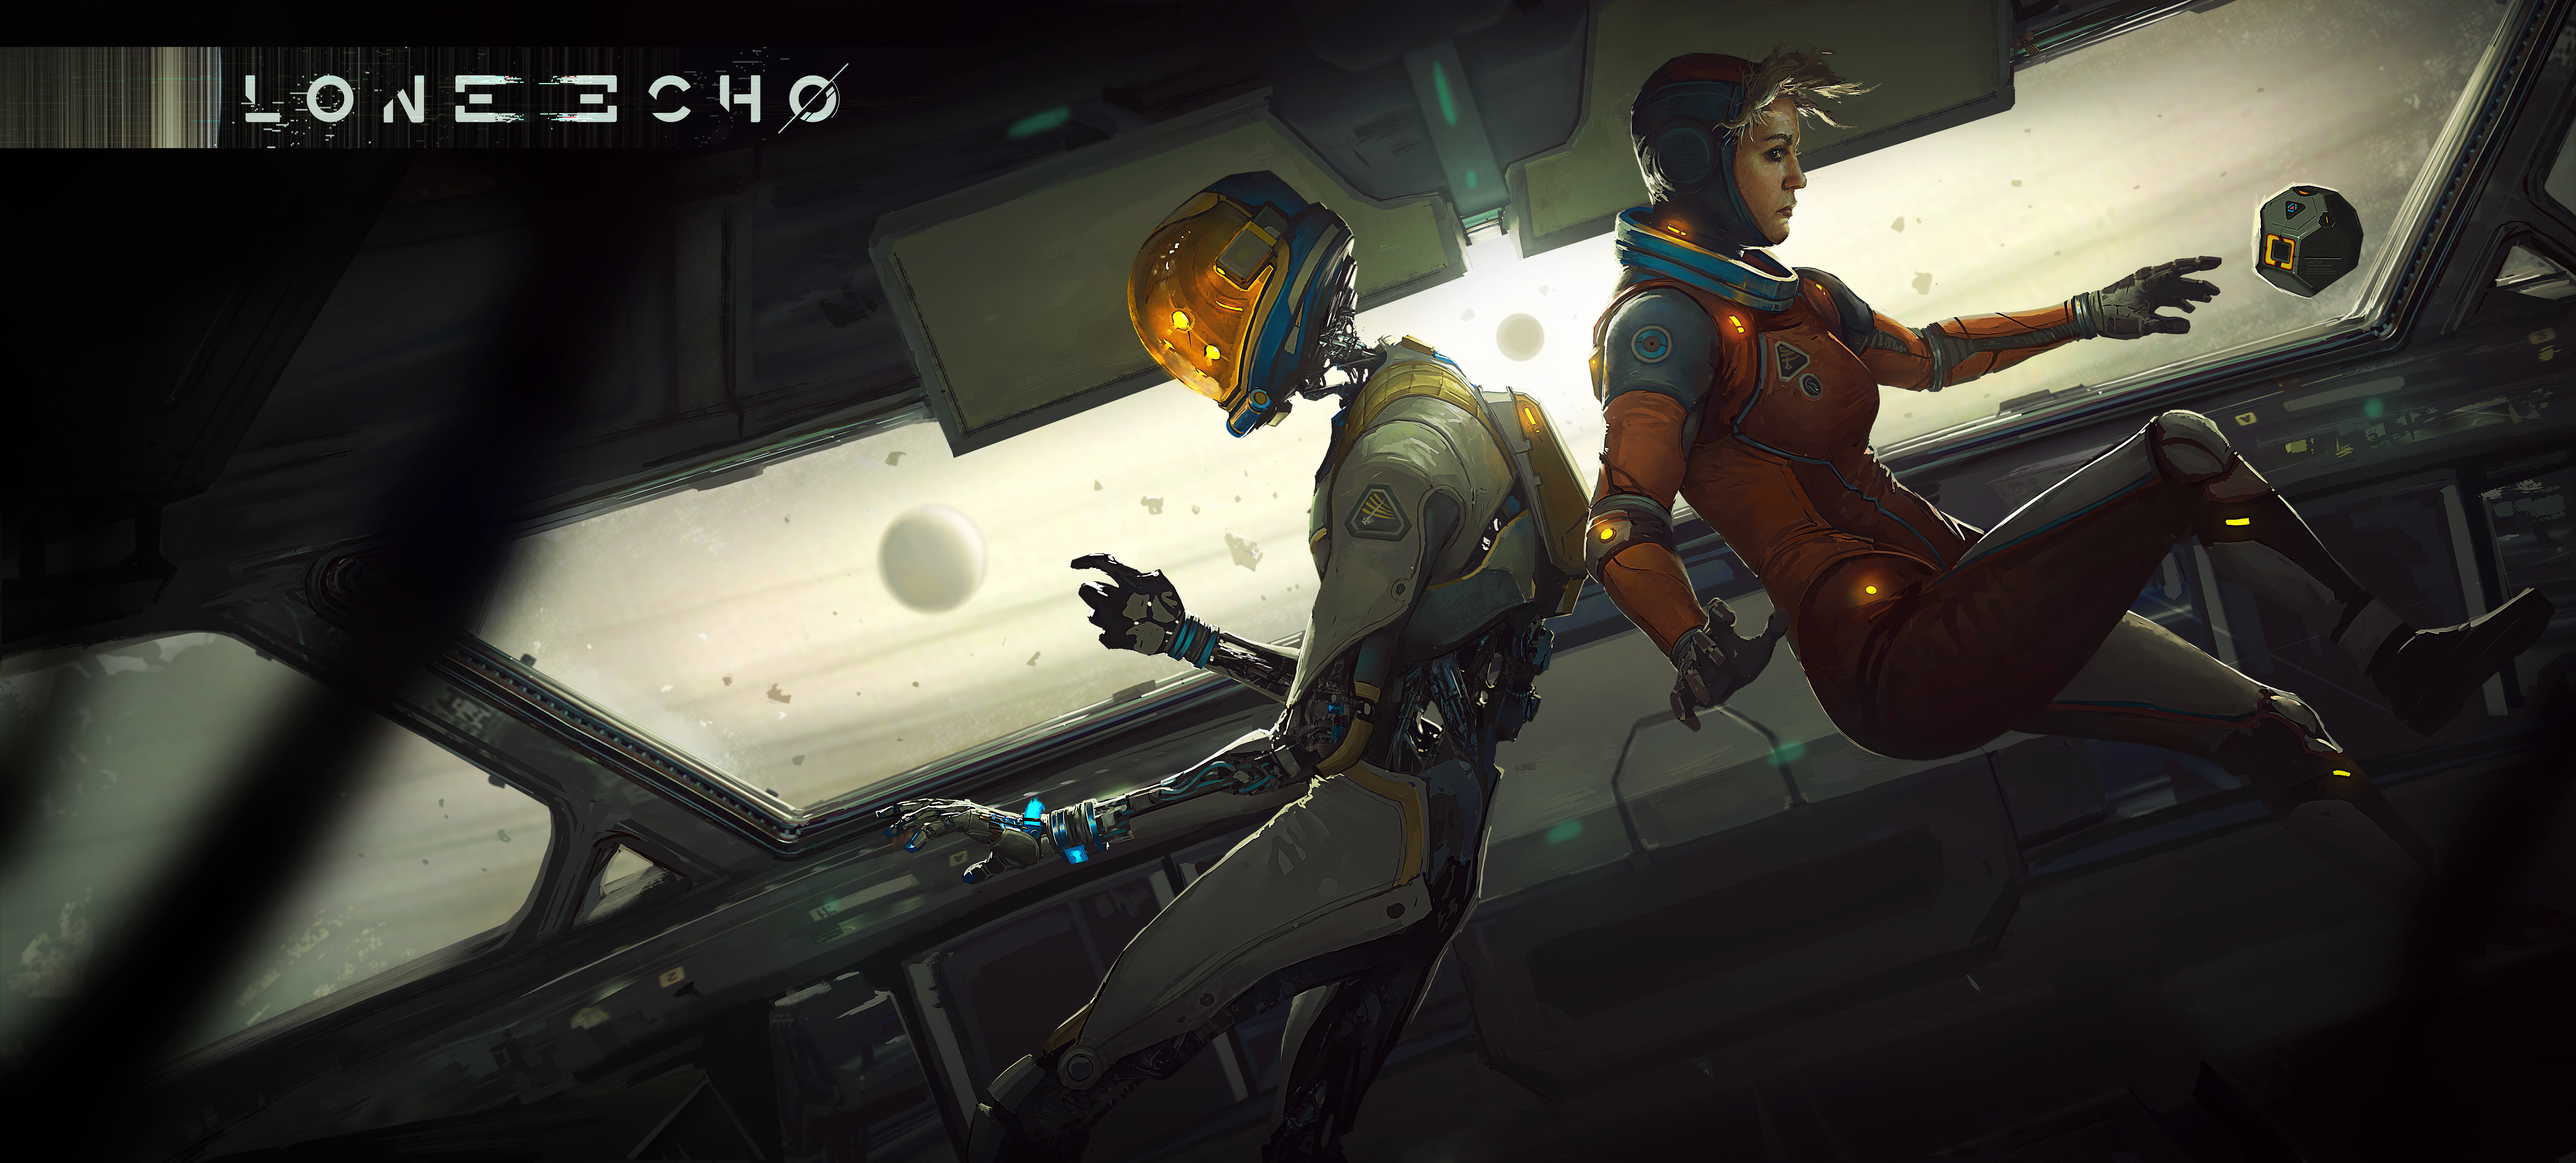 Lone Echo' Composer Jason Graves on Scoring VR Games and Exploring